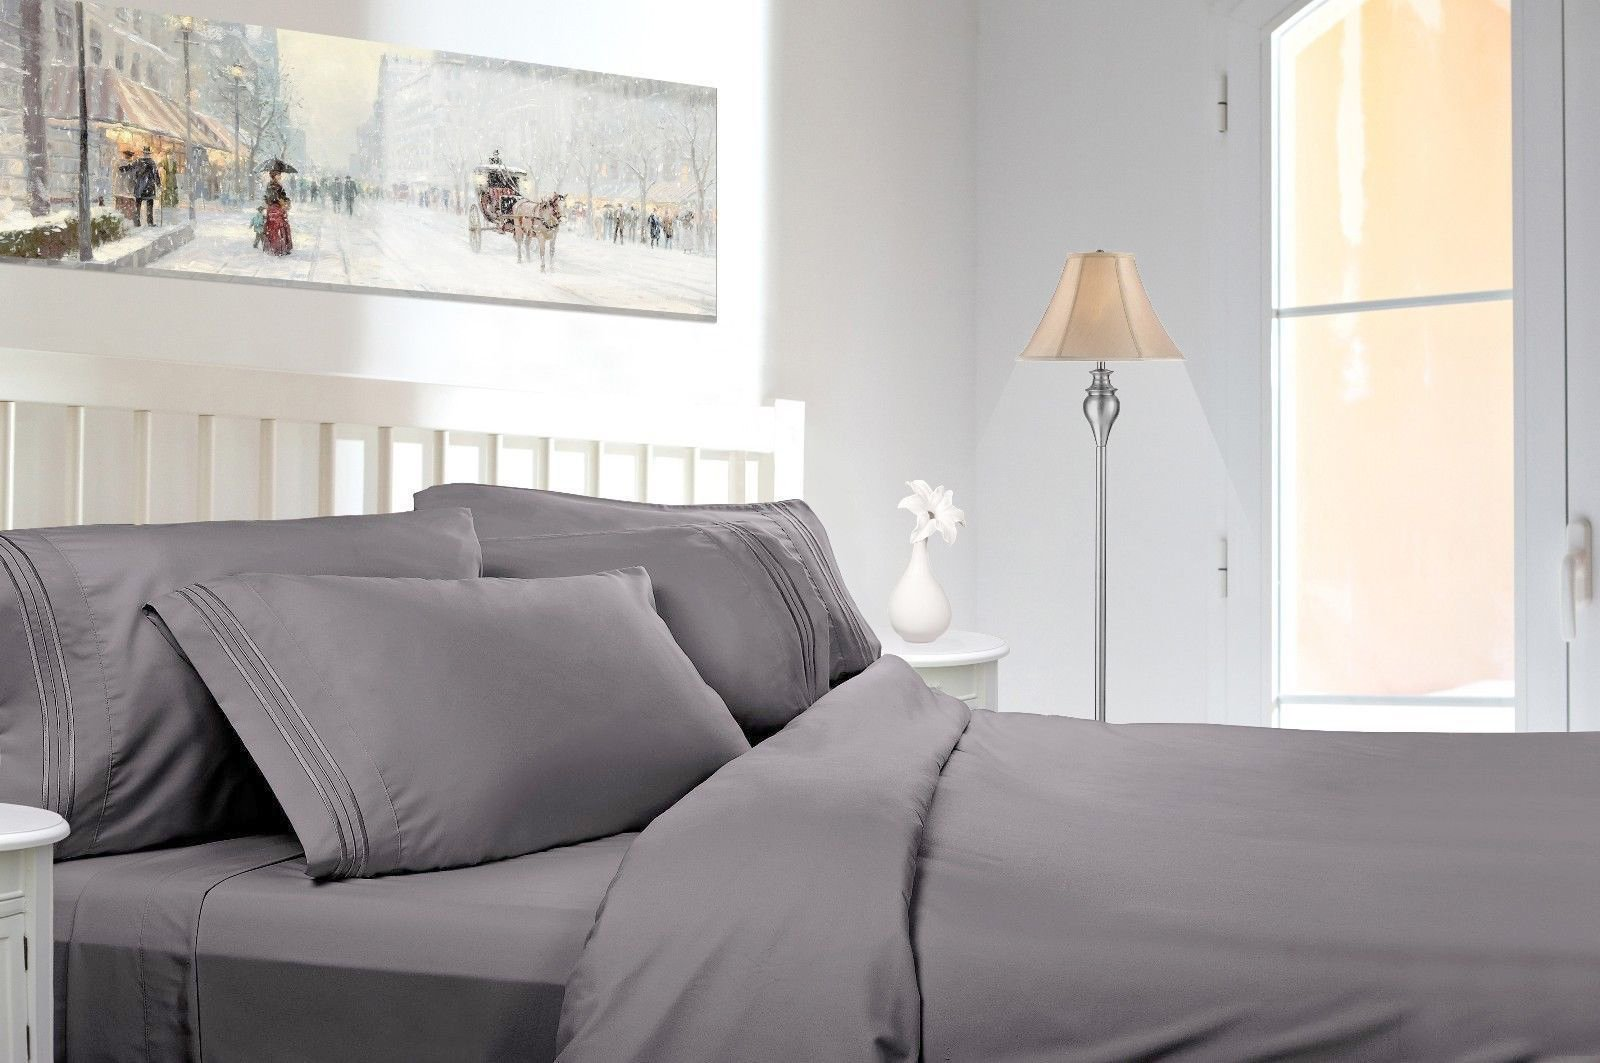 """Luxury Egyptian Comfort 1800 Series Wrinkle Free 6 Piece Sheet Set, Full Size, Gray - 1 flat sheet (88""""x99""""), 1 fitted sheet (60""""x80"""") and 2 pillowcases (20""""x30"""") + 2 bonus pillowcases Long lasting breathable microfiber material Oversized for better coverage on today's deeper mattresses - sheet-sets, bedroom-sheets-comforters, bedroom - 71cqwp5MkRL -"""